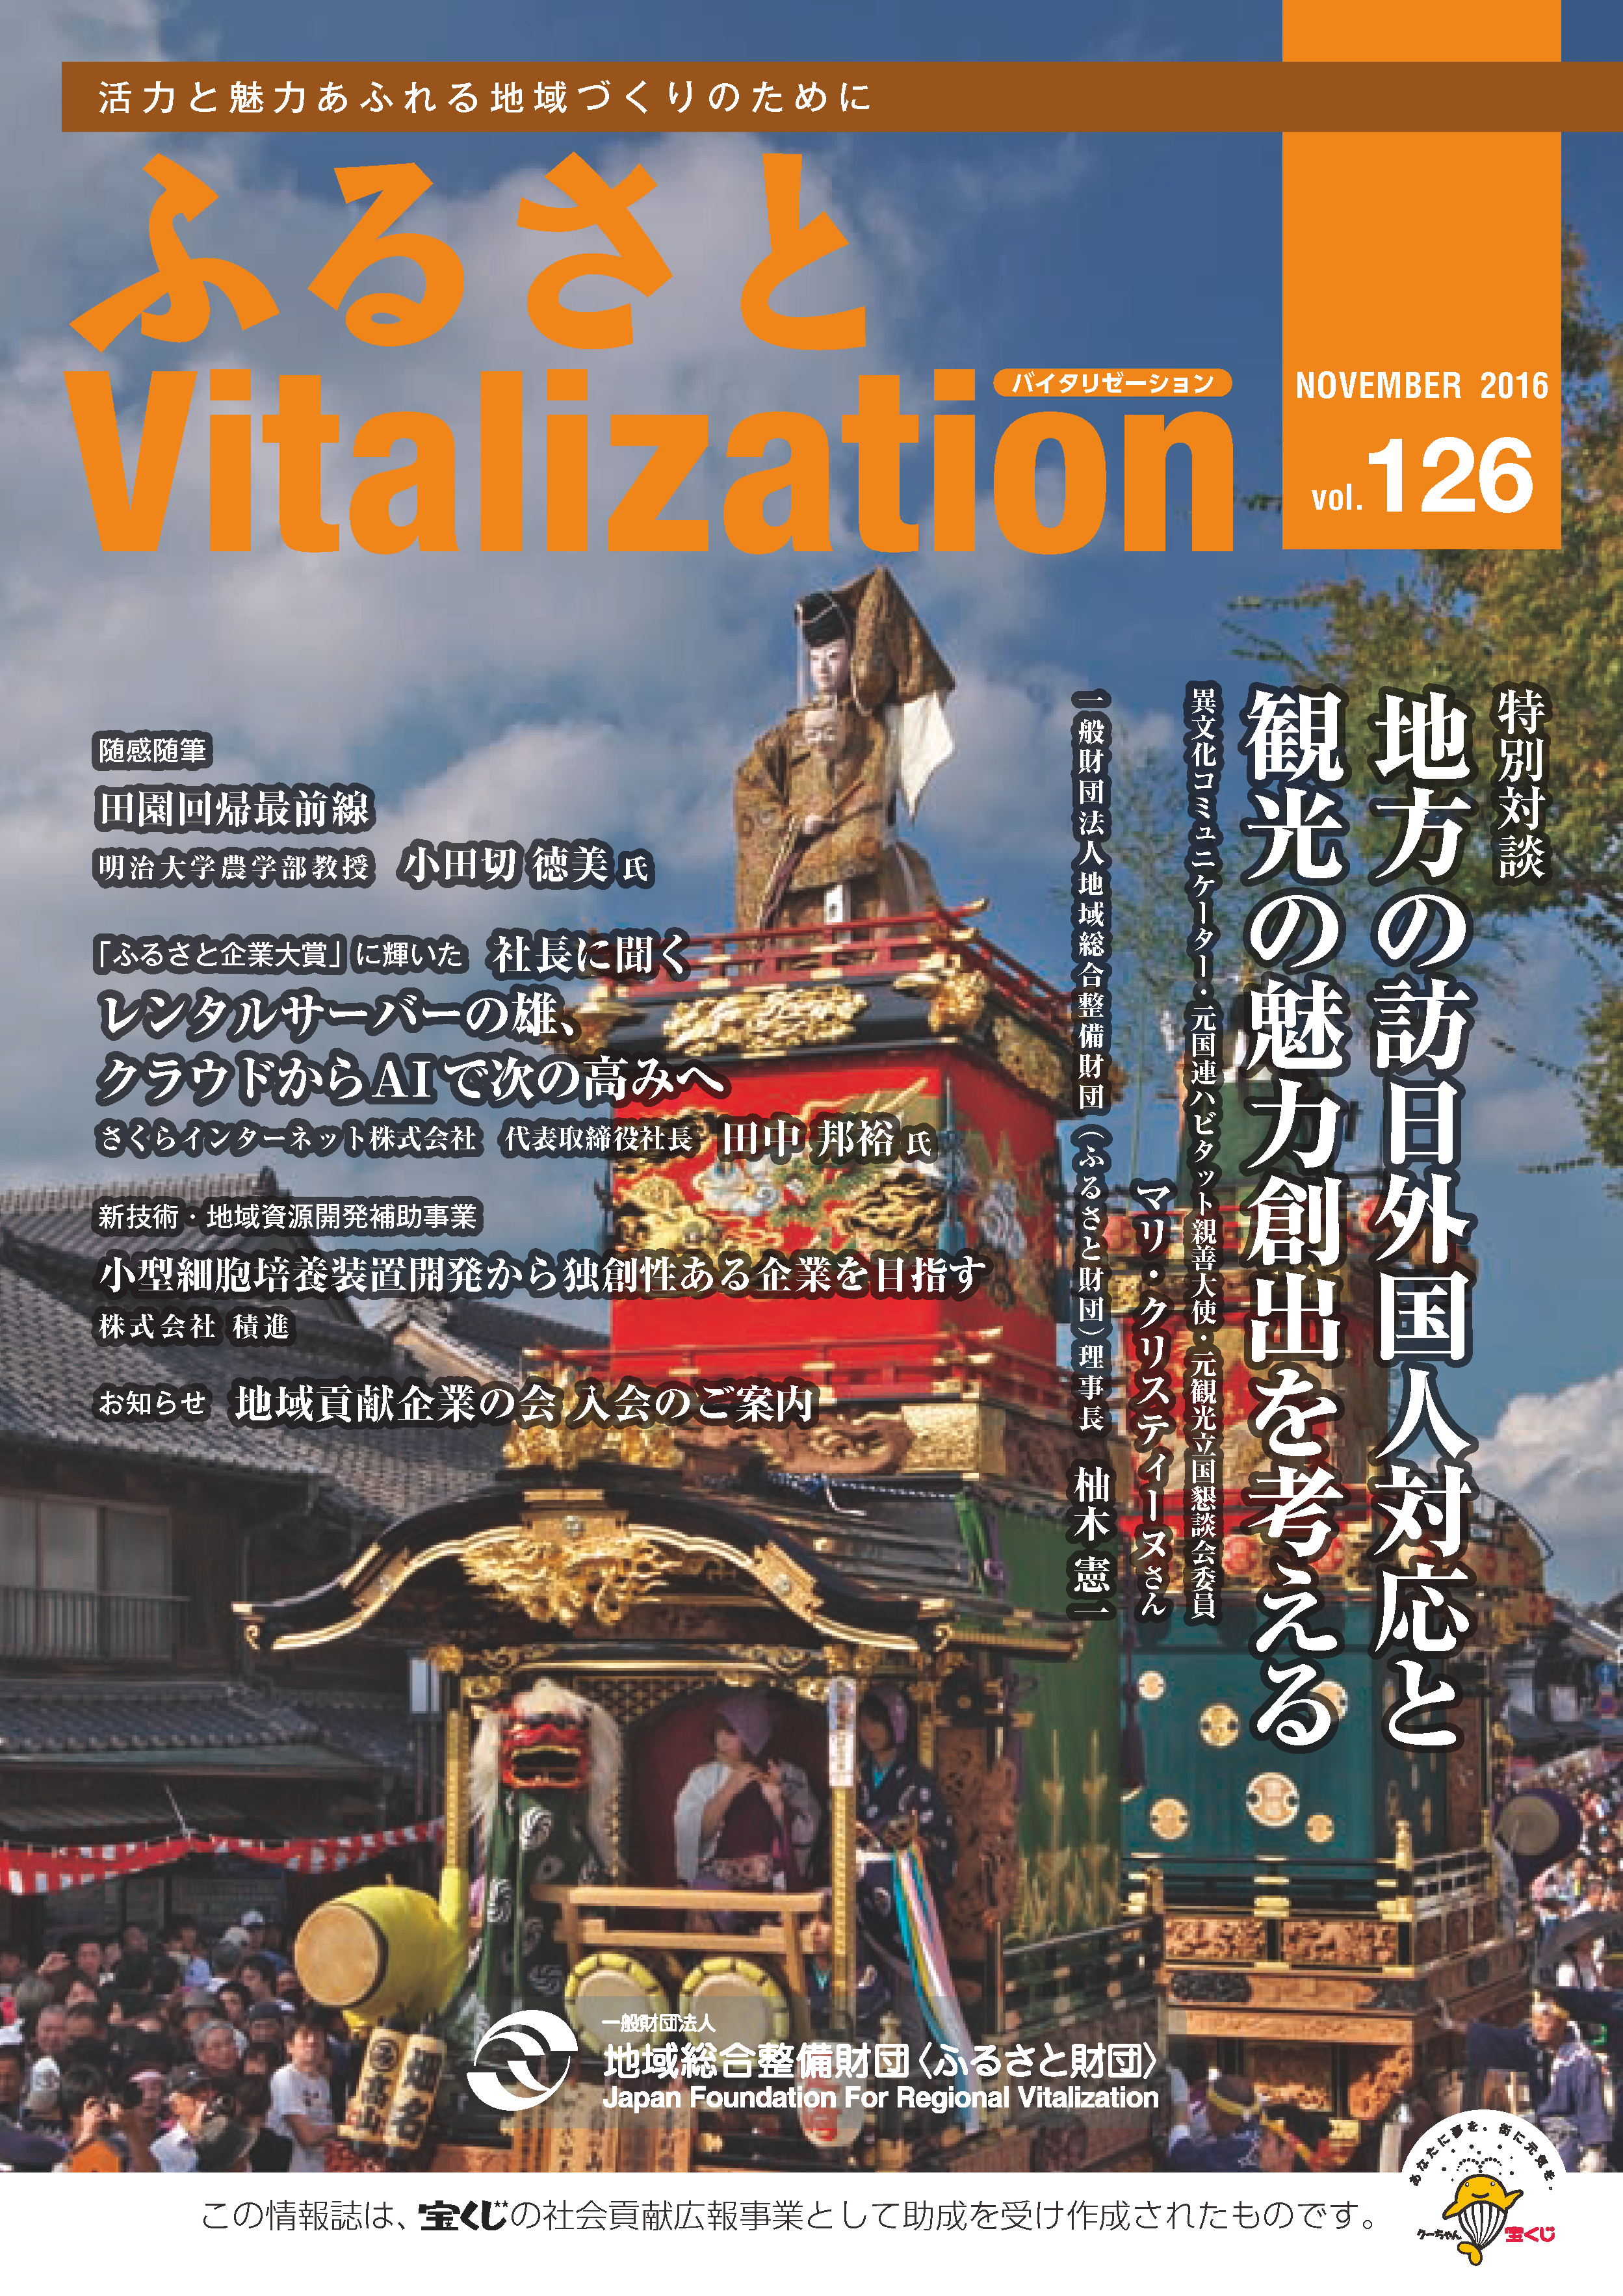 Furusato Vitalization vol.126_ページ_01.png